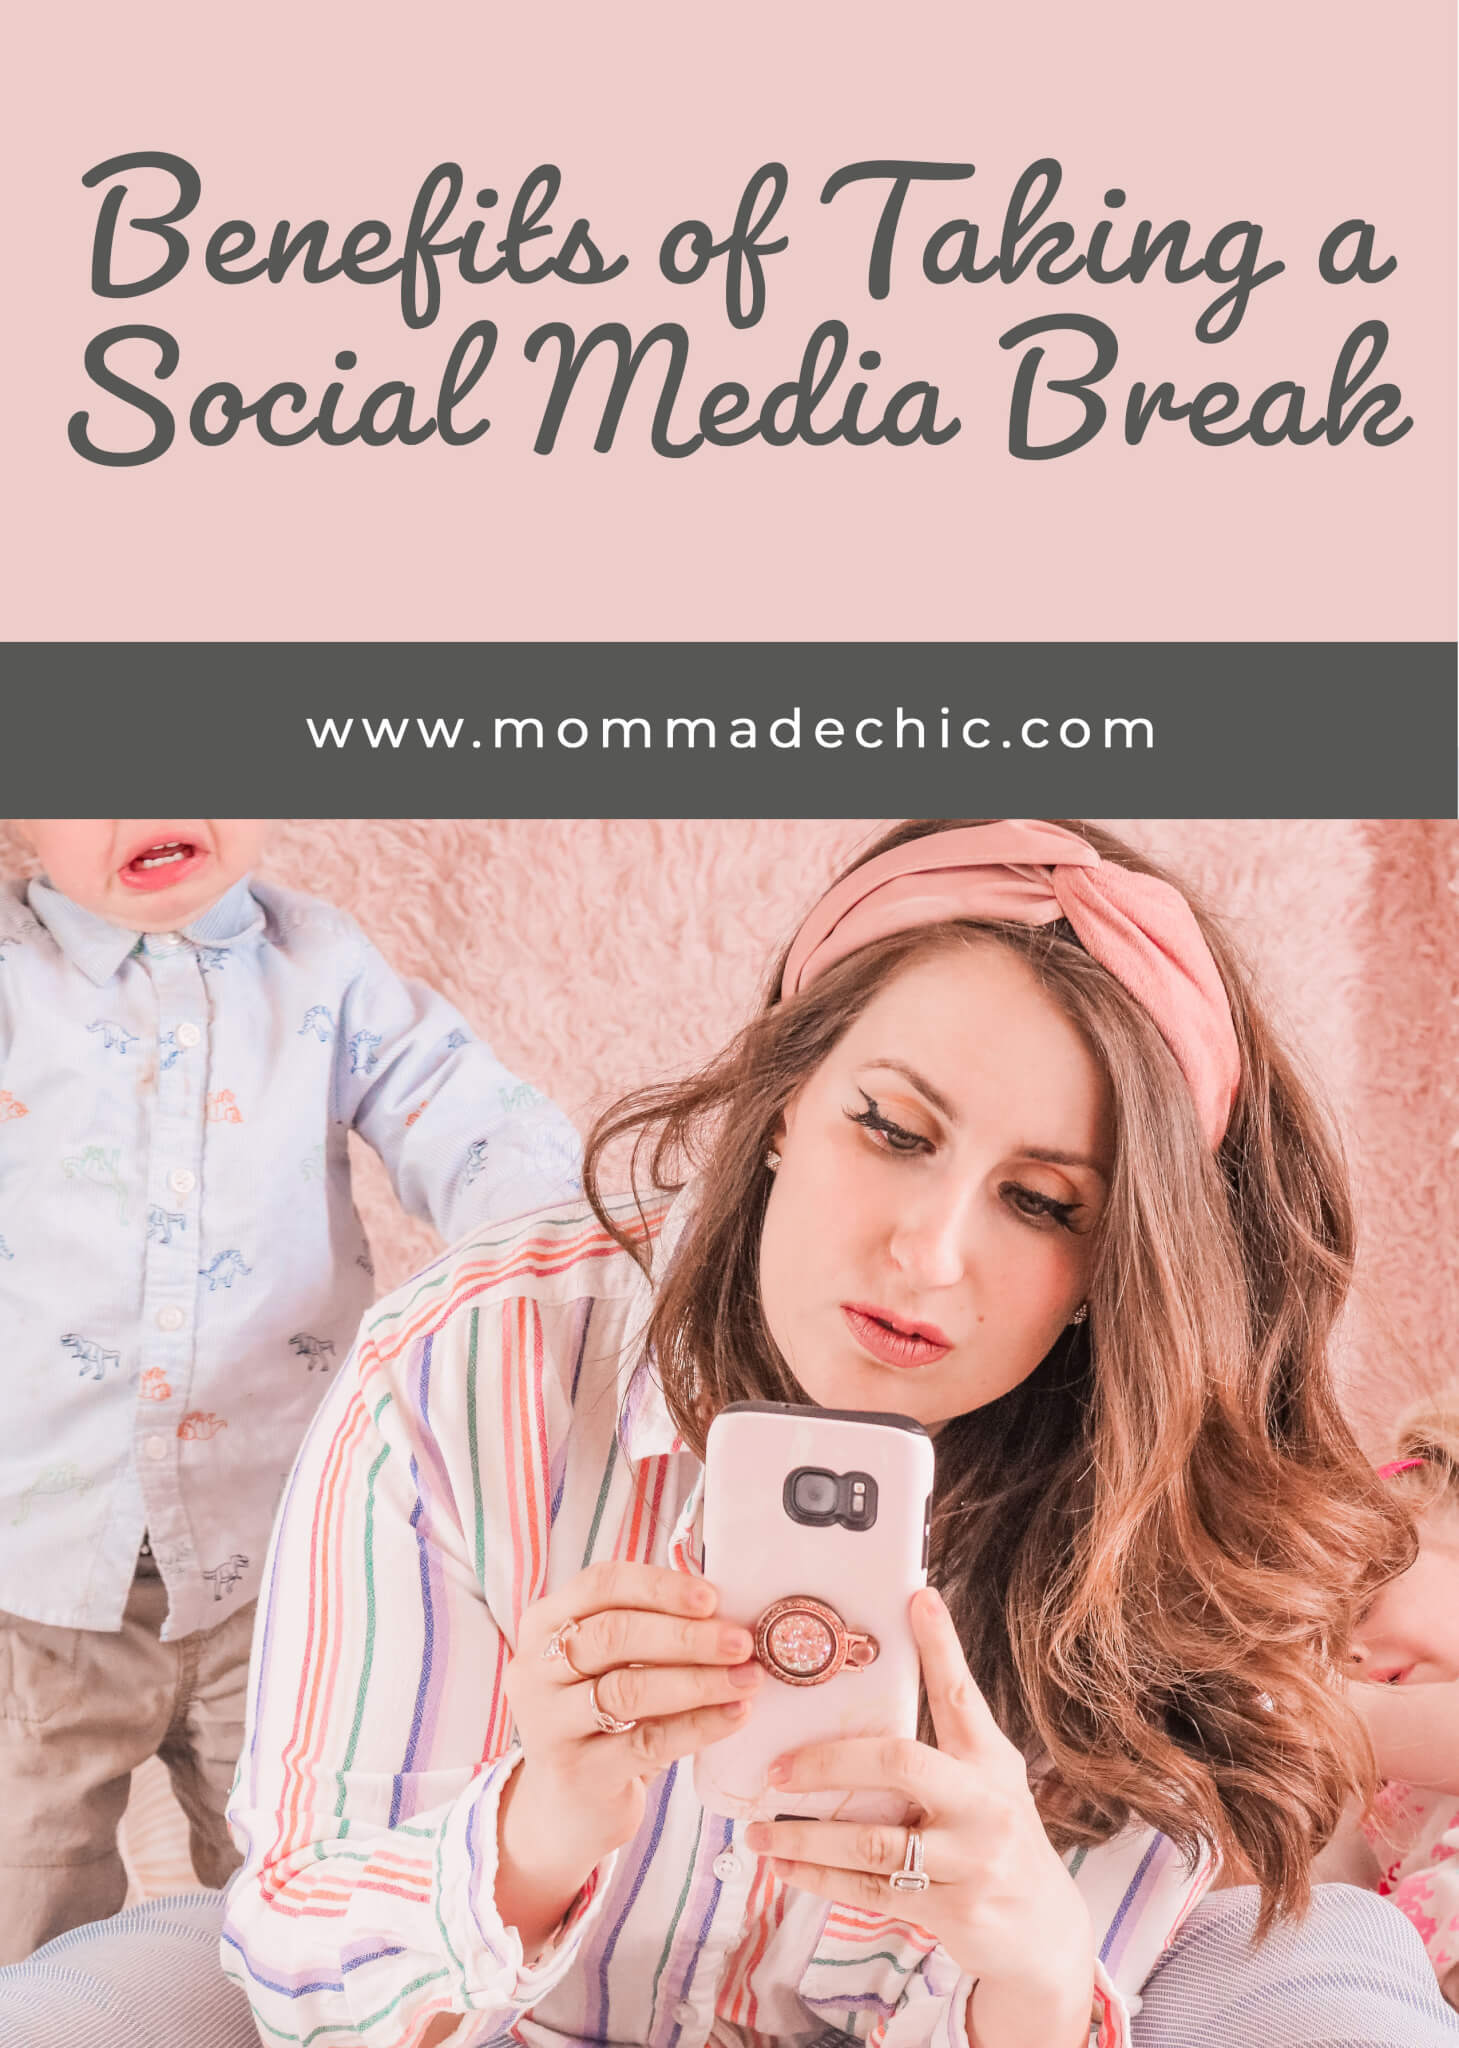 The Benefits of Taking a Social Media Break